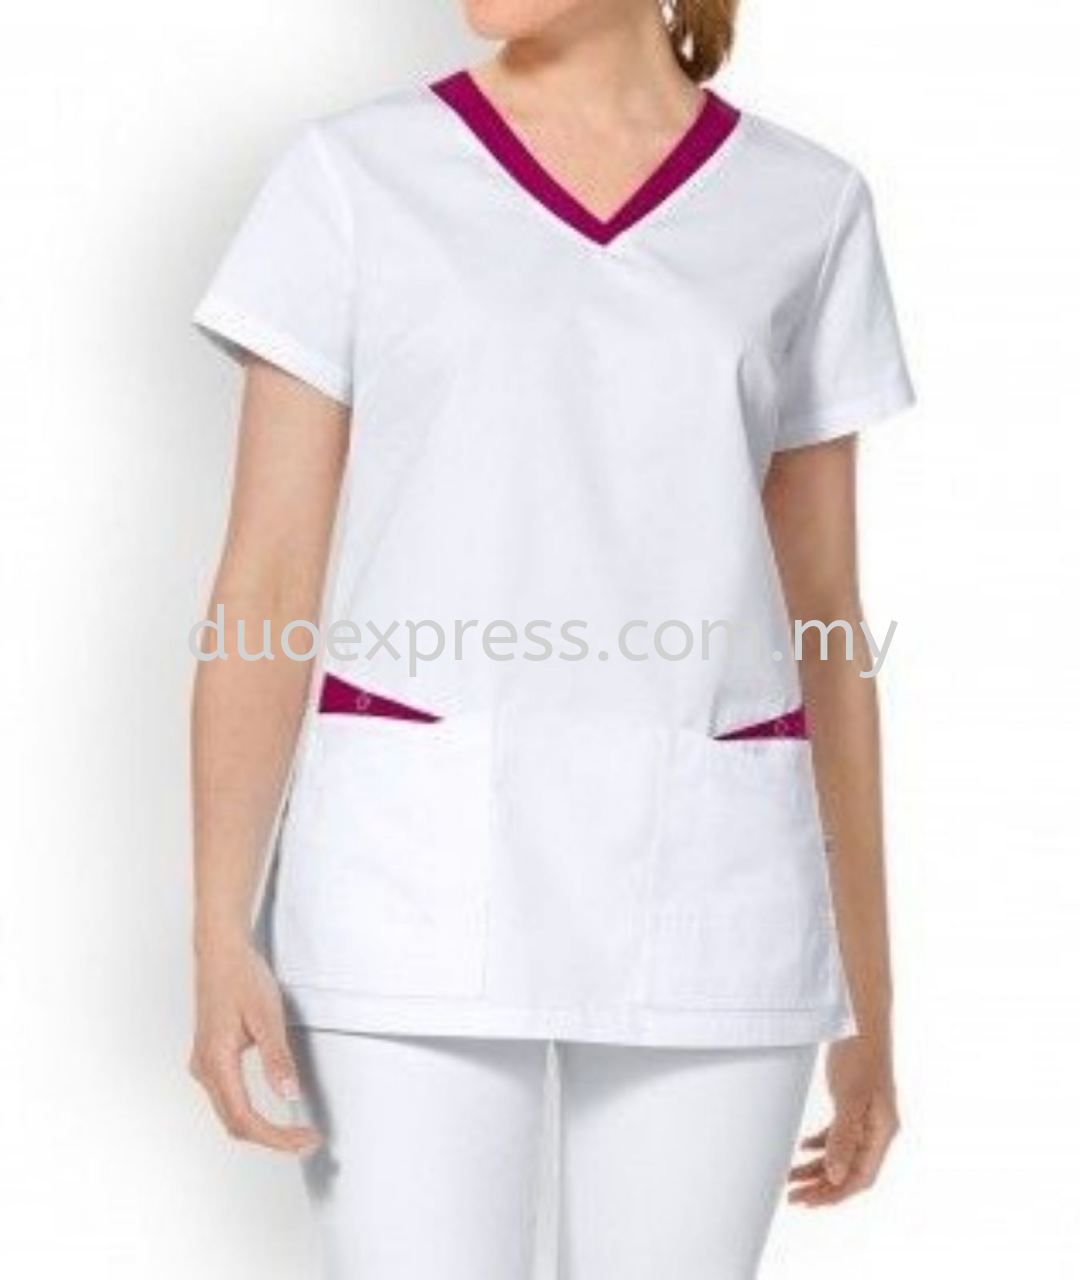 Scrub Suit - Nurse